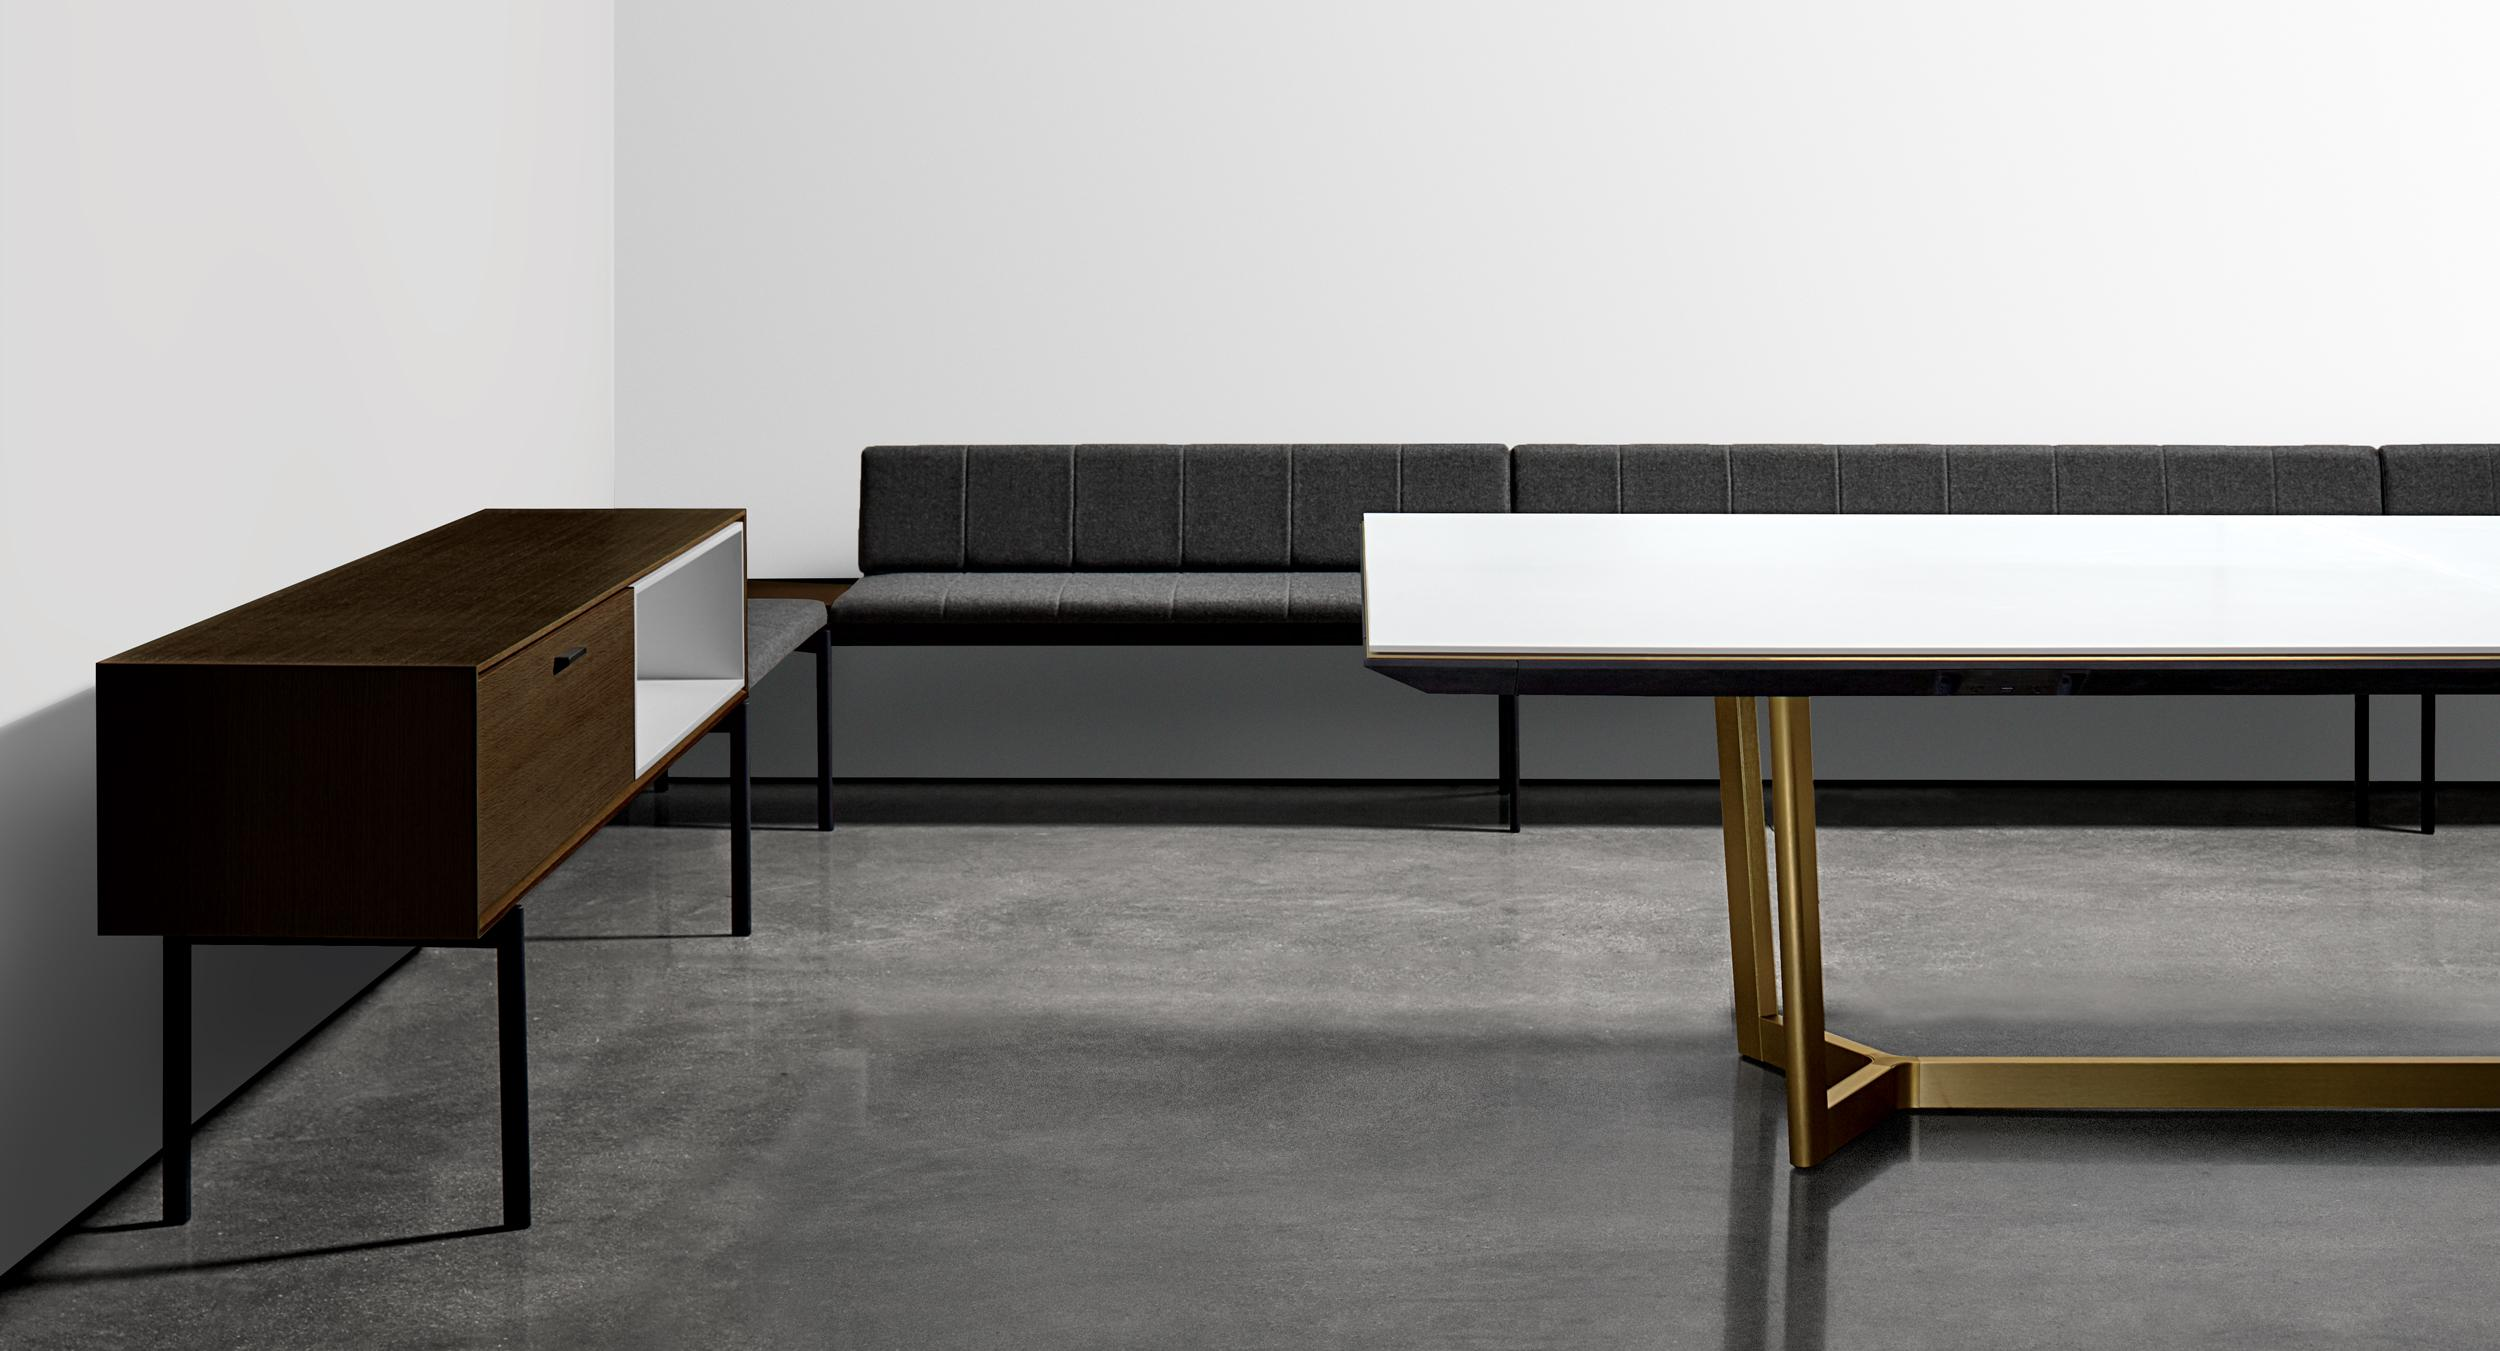 Stunning tables encircled by the revolutionary HALO soft edge; providing protection for table and chair while delivering vital connectivity. Seating and Modern sideboard storage accommodates refrigeration, cutlery, waste bins, glassware, and more